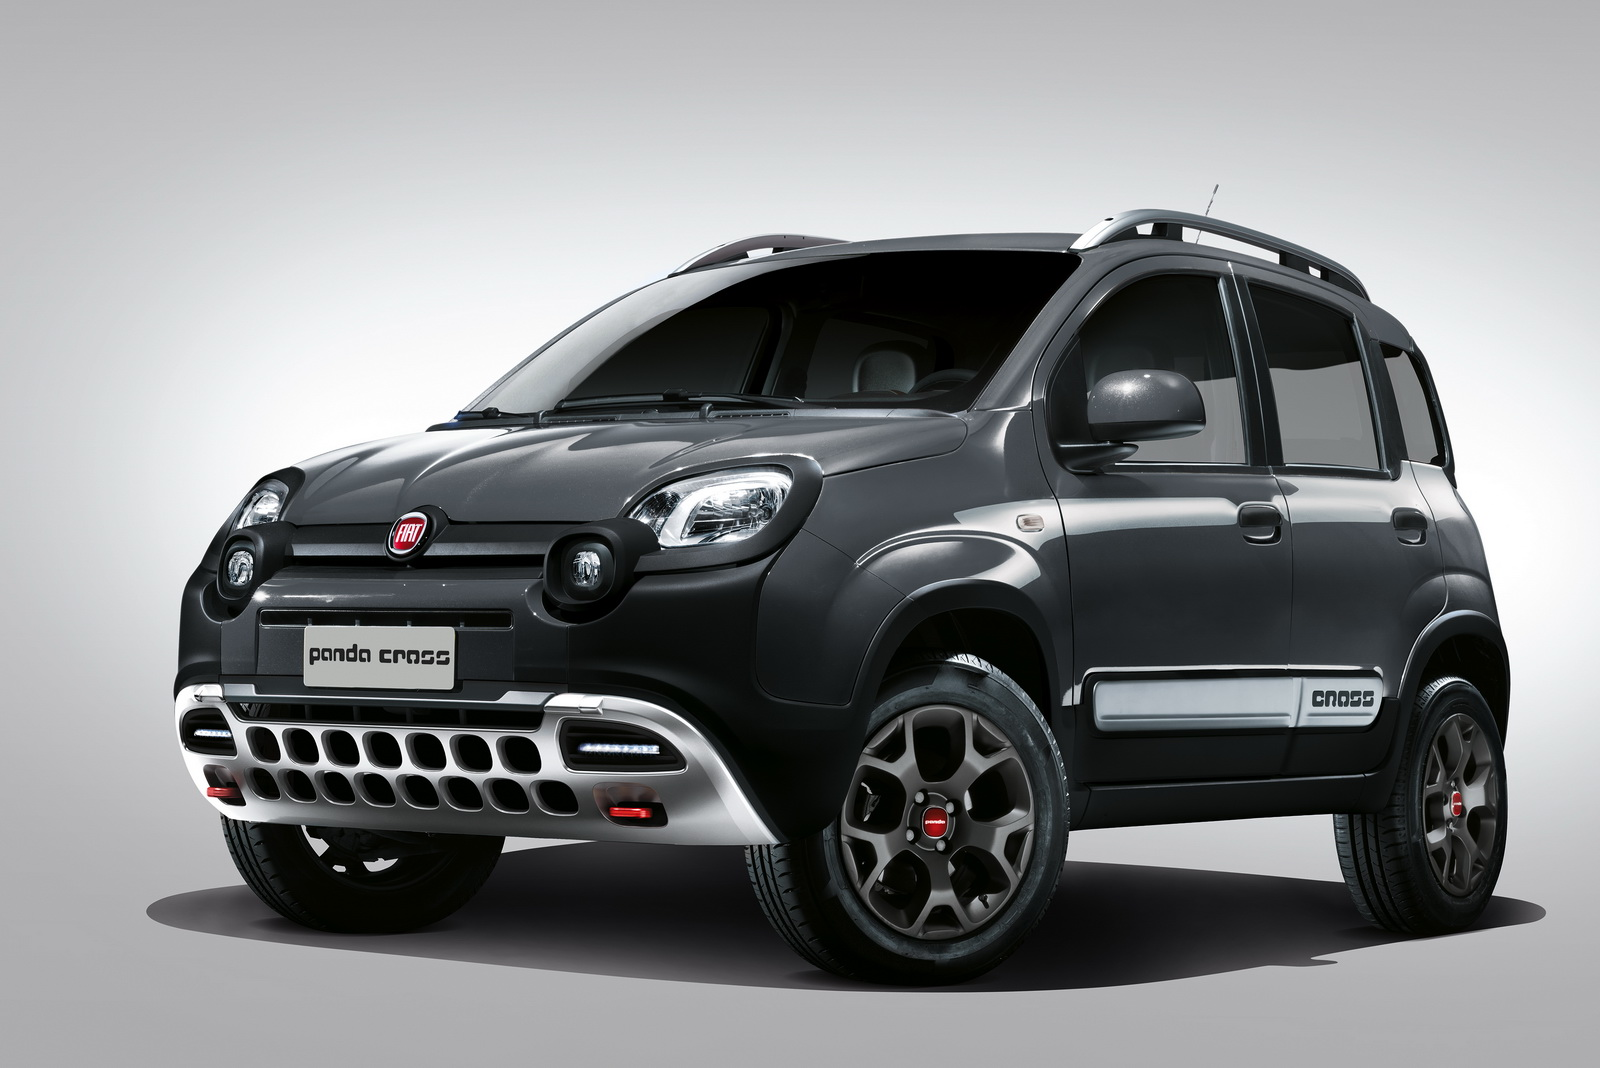 2017 fiat panda cross photo gallery autocar india. Black Bedroom Furniture Sets. Home Design Ideas